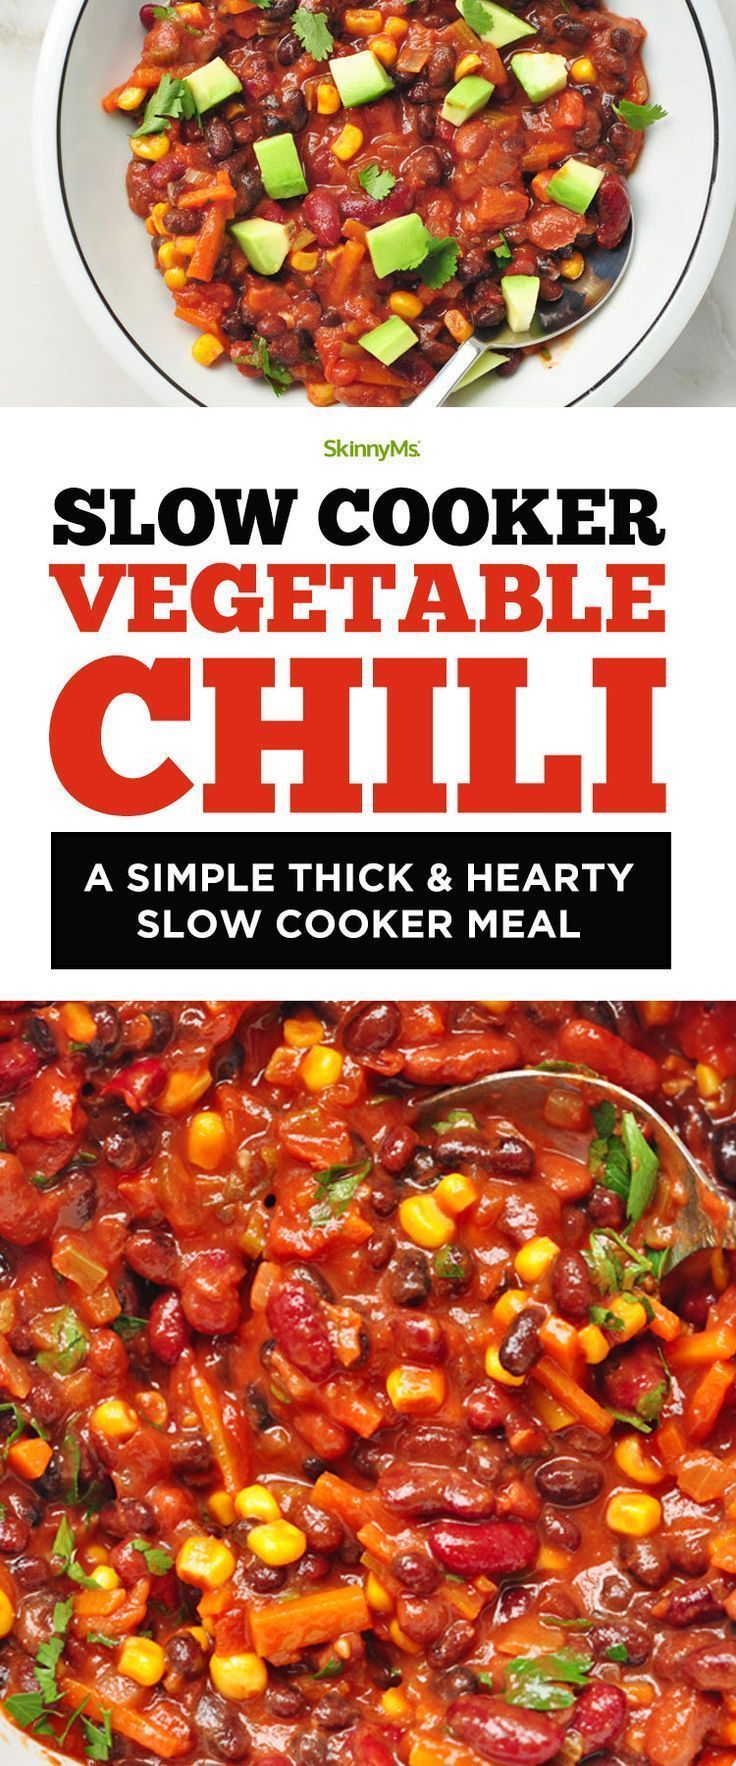 Slow Cooker Vegetable Chili A Simple Thick Hearty Slow Cooker Meal